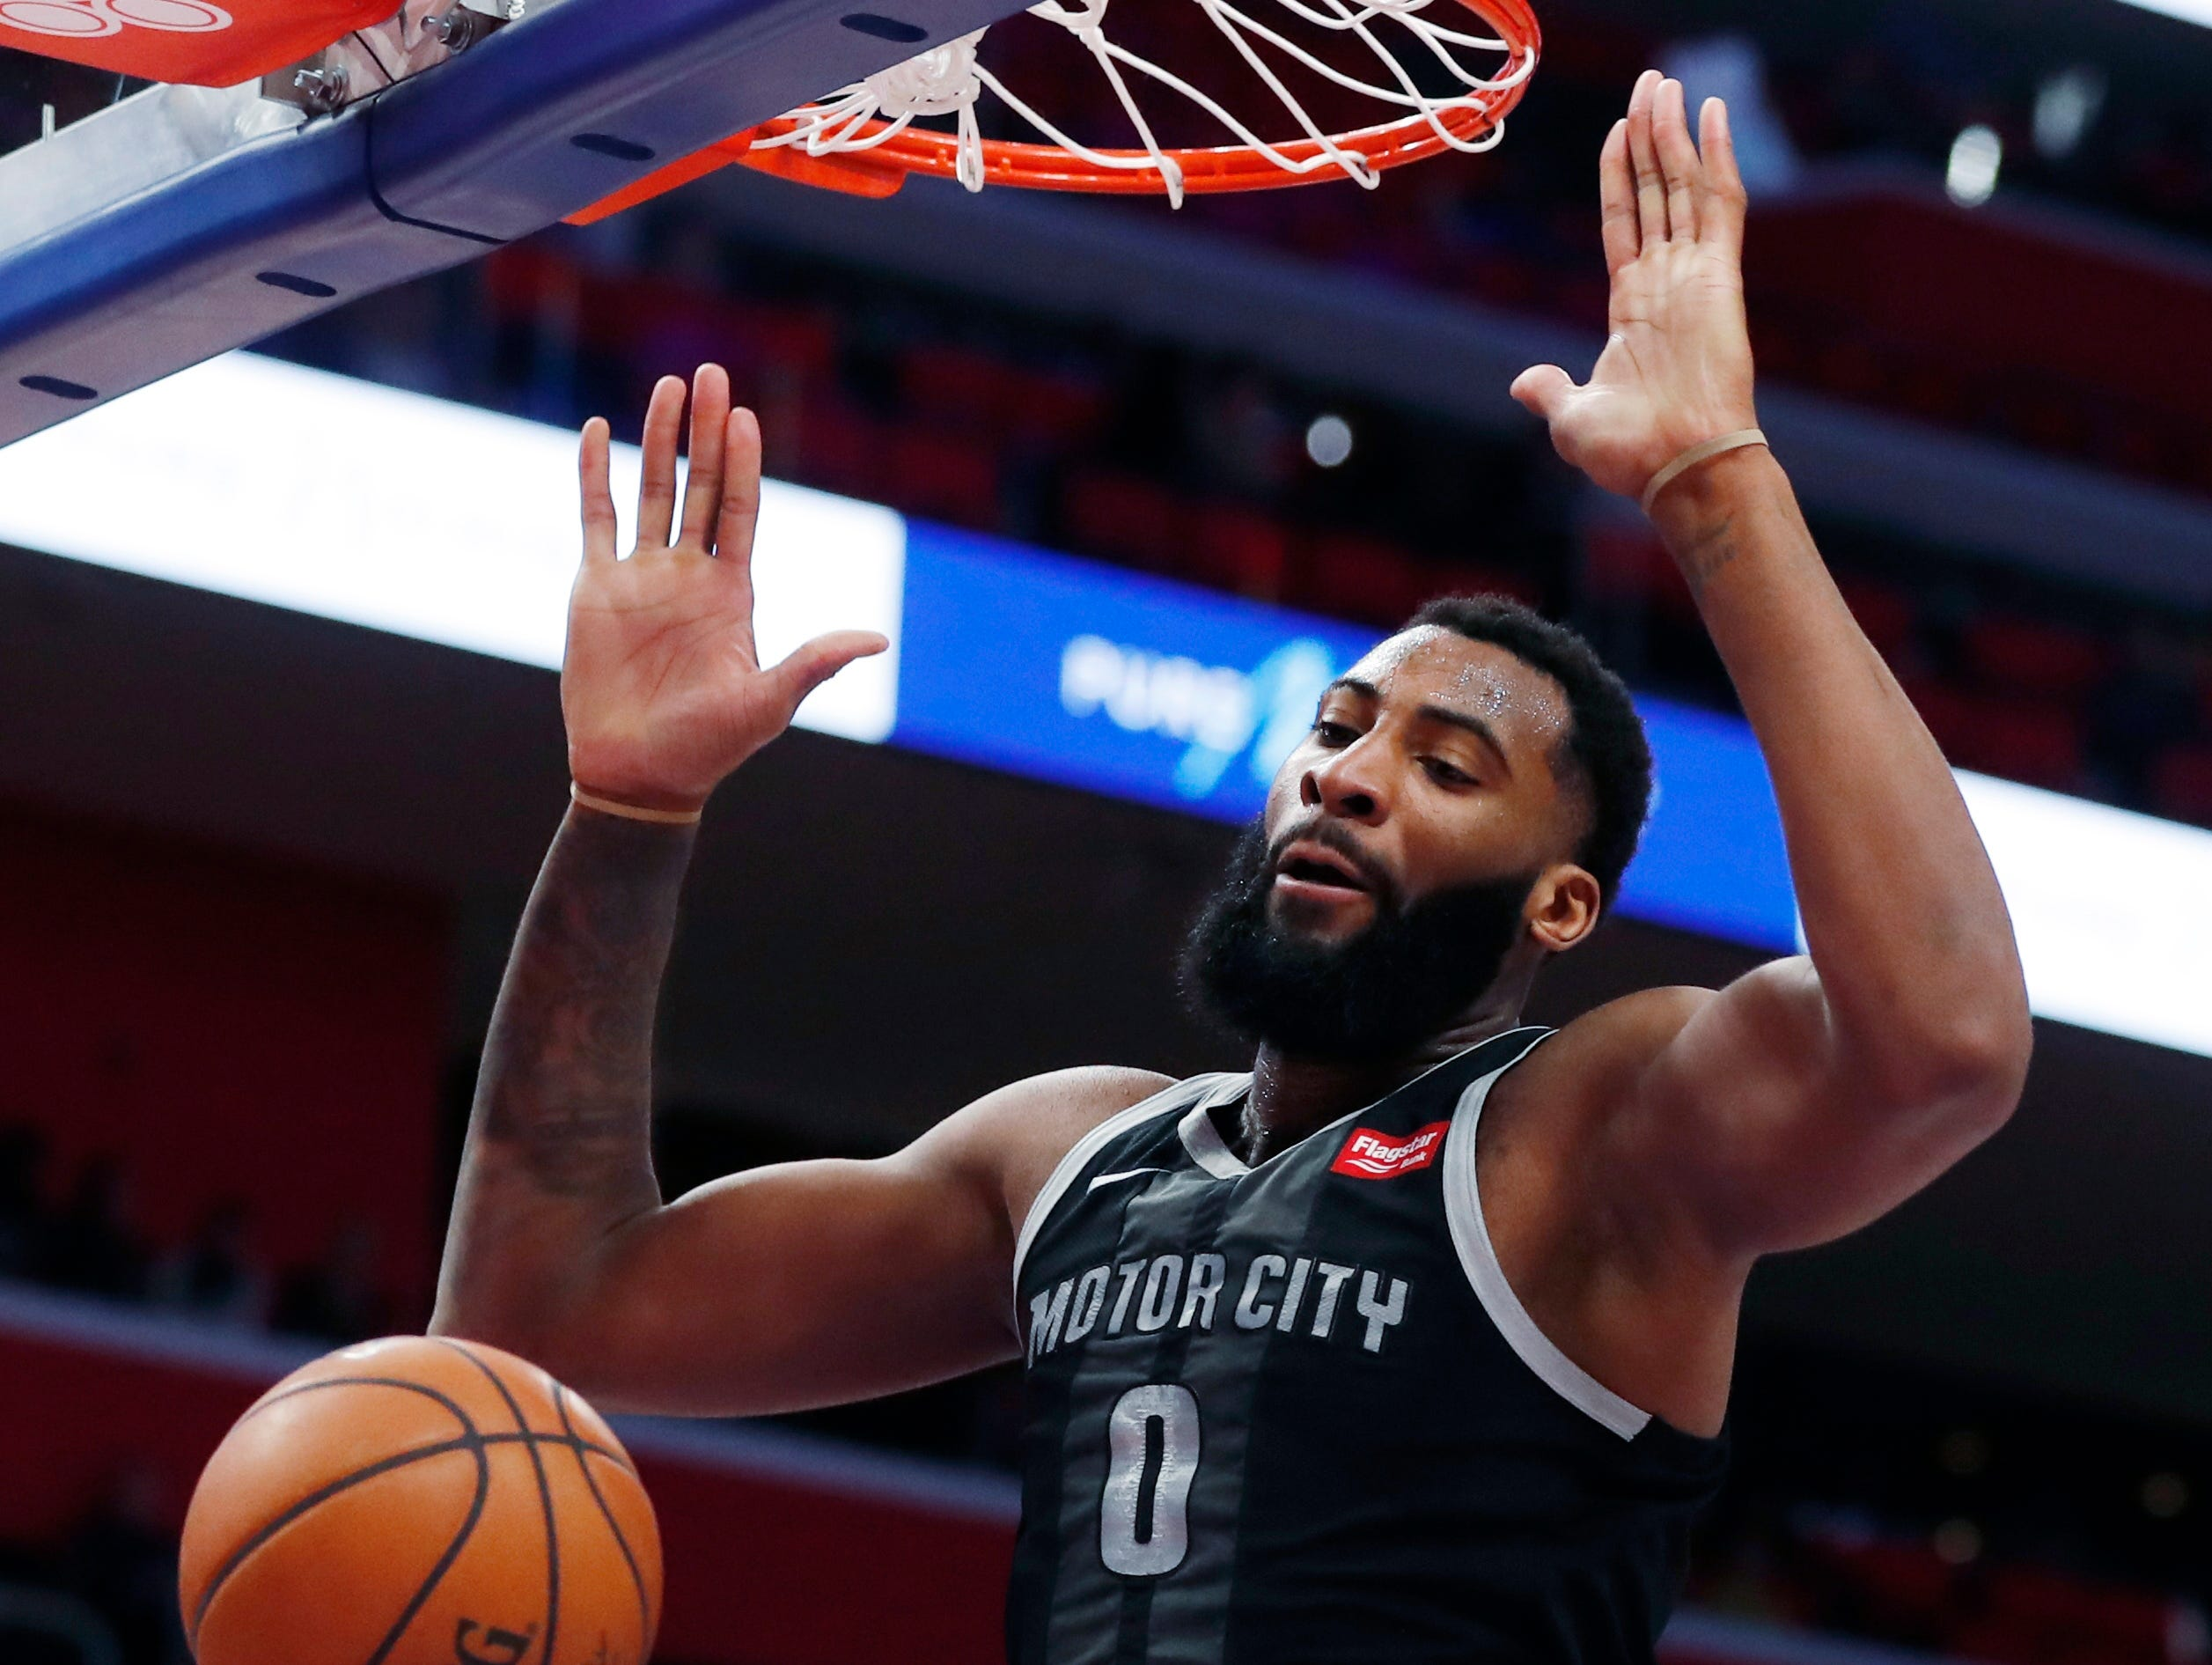 Detroit Pistons center Andre Drummond dunks during the first half of an NBA basketball game against the New York Knicks, Friday, Feb. 8, 2019, in Detroit.